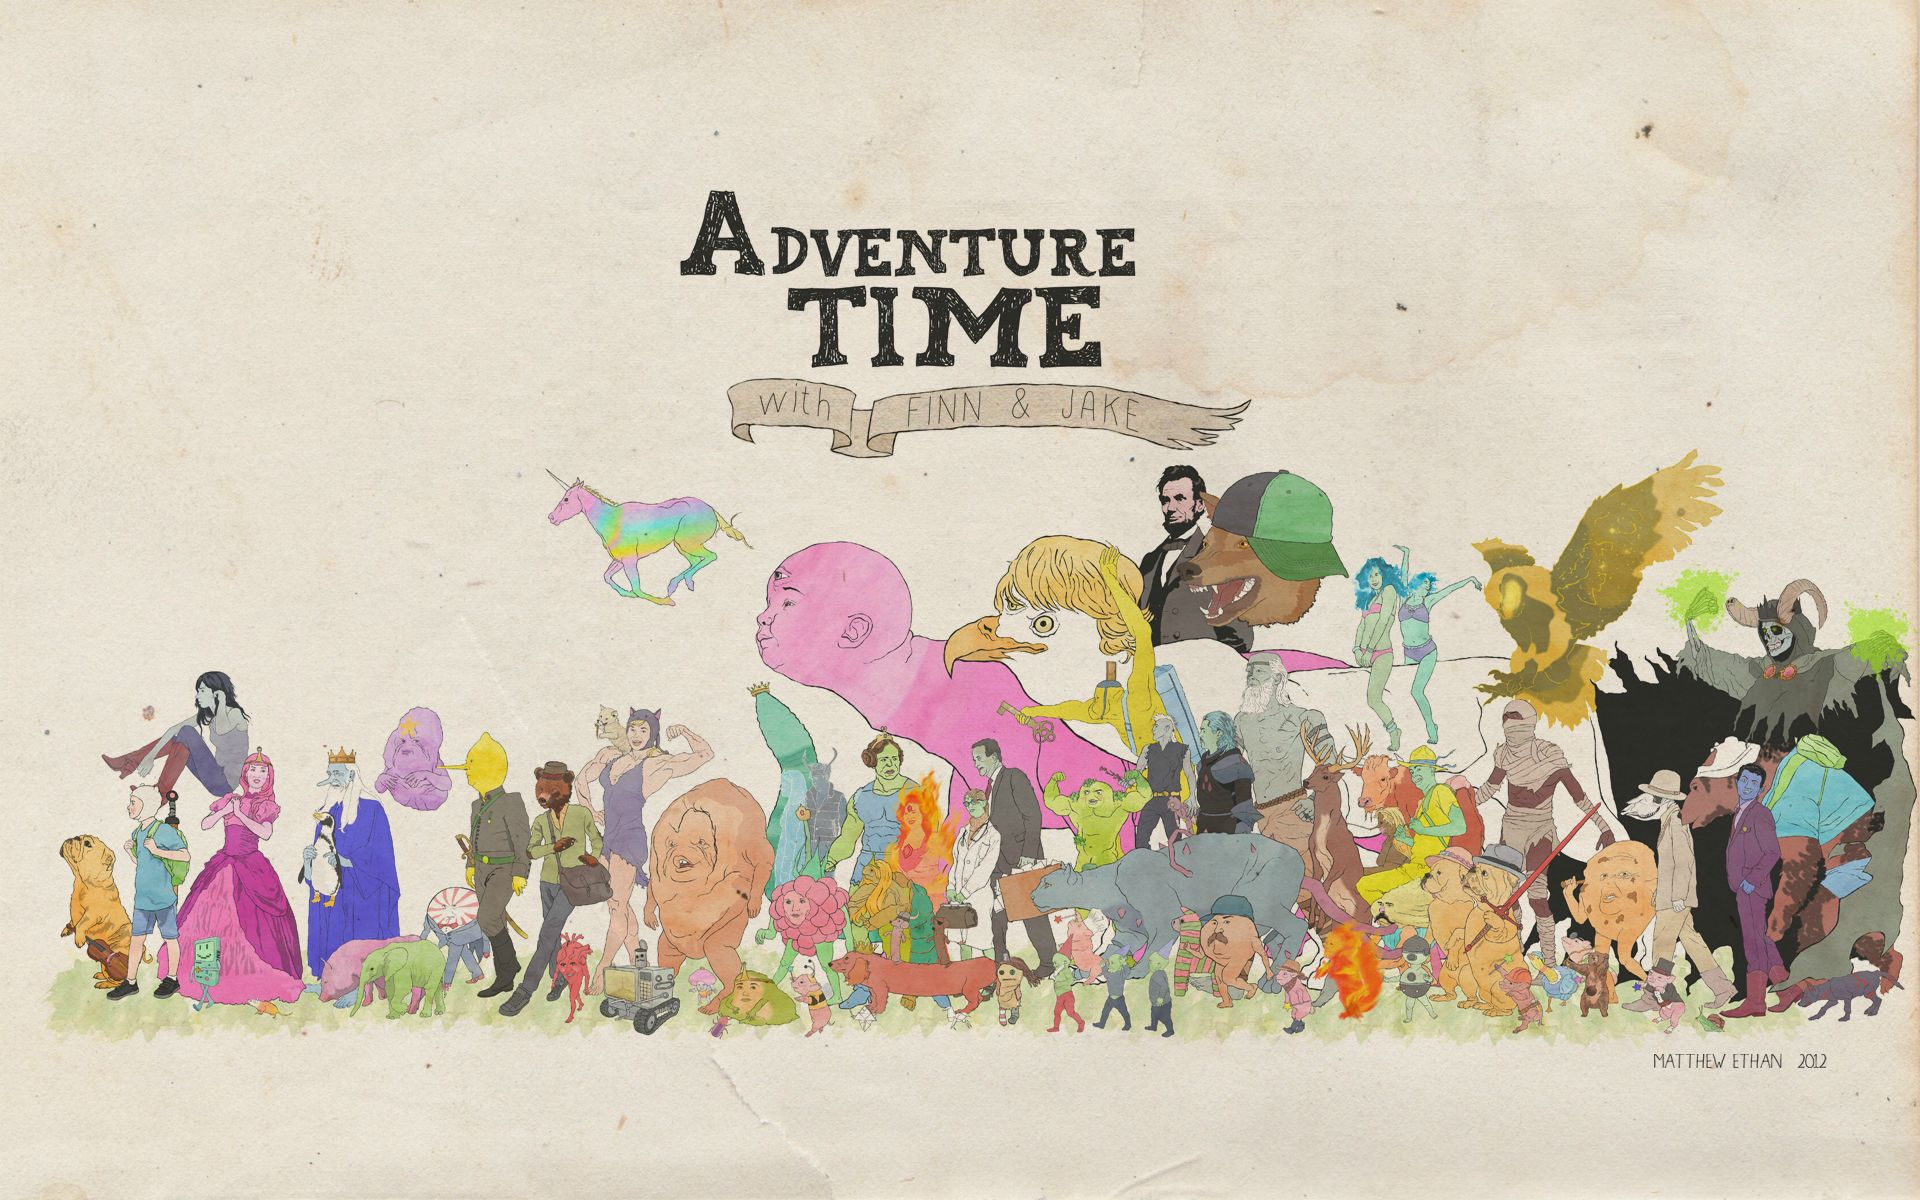 Adventure time wallpapers wallpapersafari description adventure time wallpaper is a hi res wallpaper for pc 1920x1200 altavistaventures Gallery